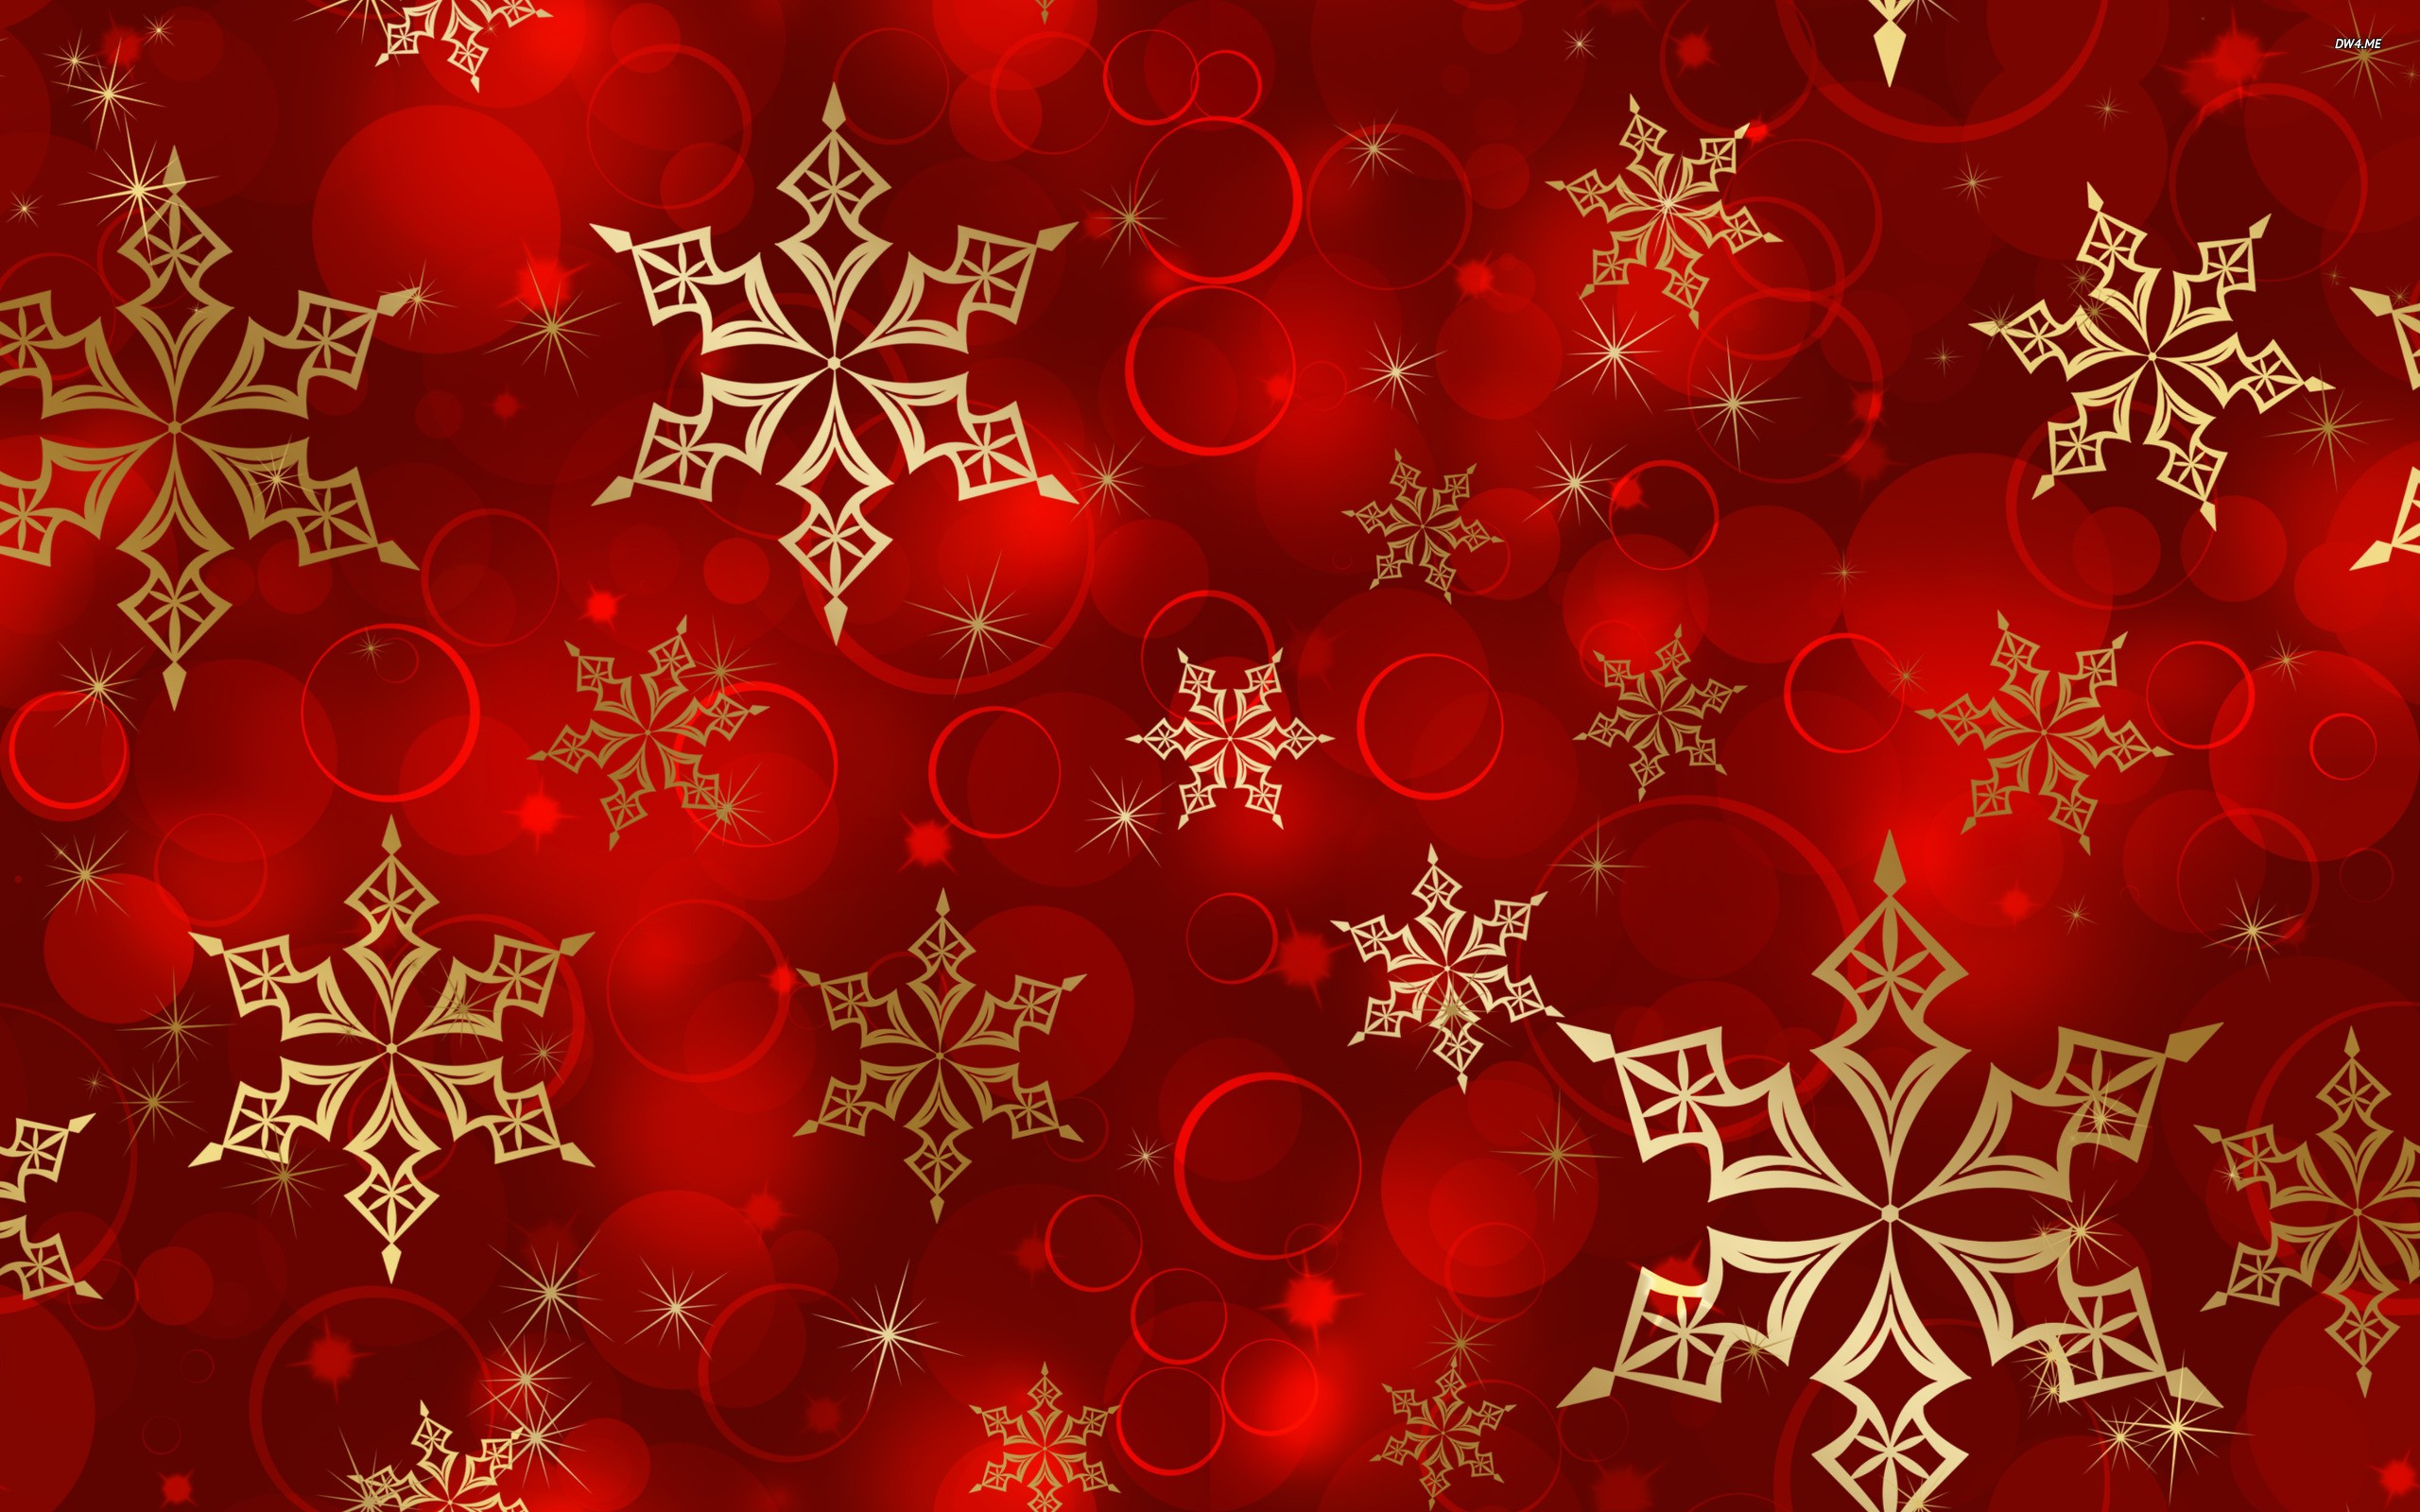 Christmas Background Tumblr ·① Download Free Wallpapers